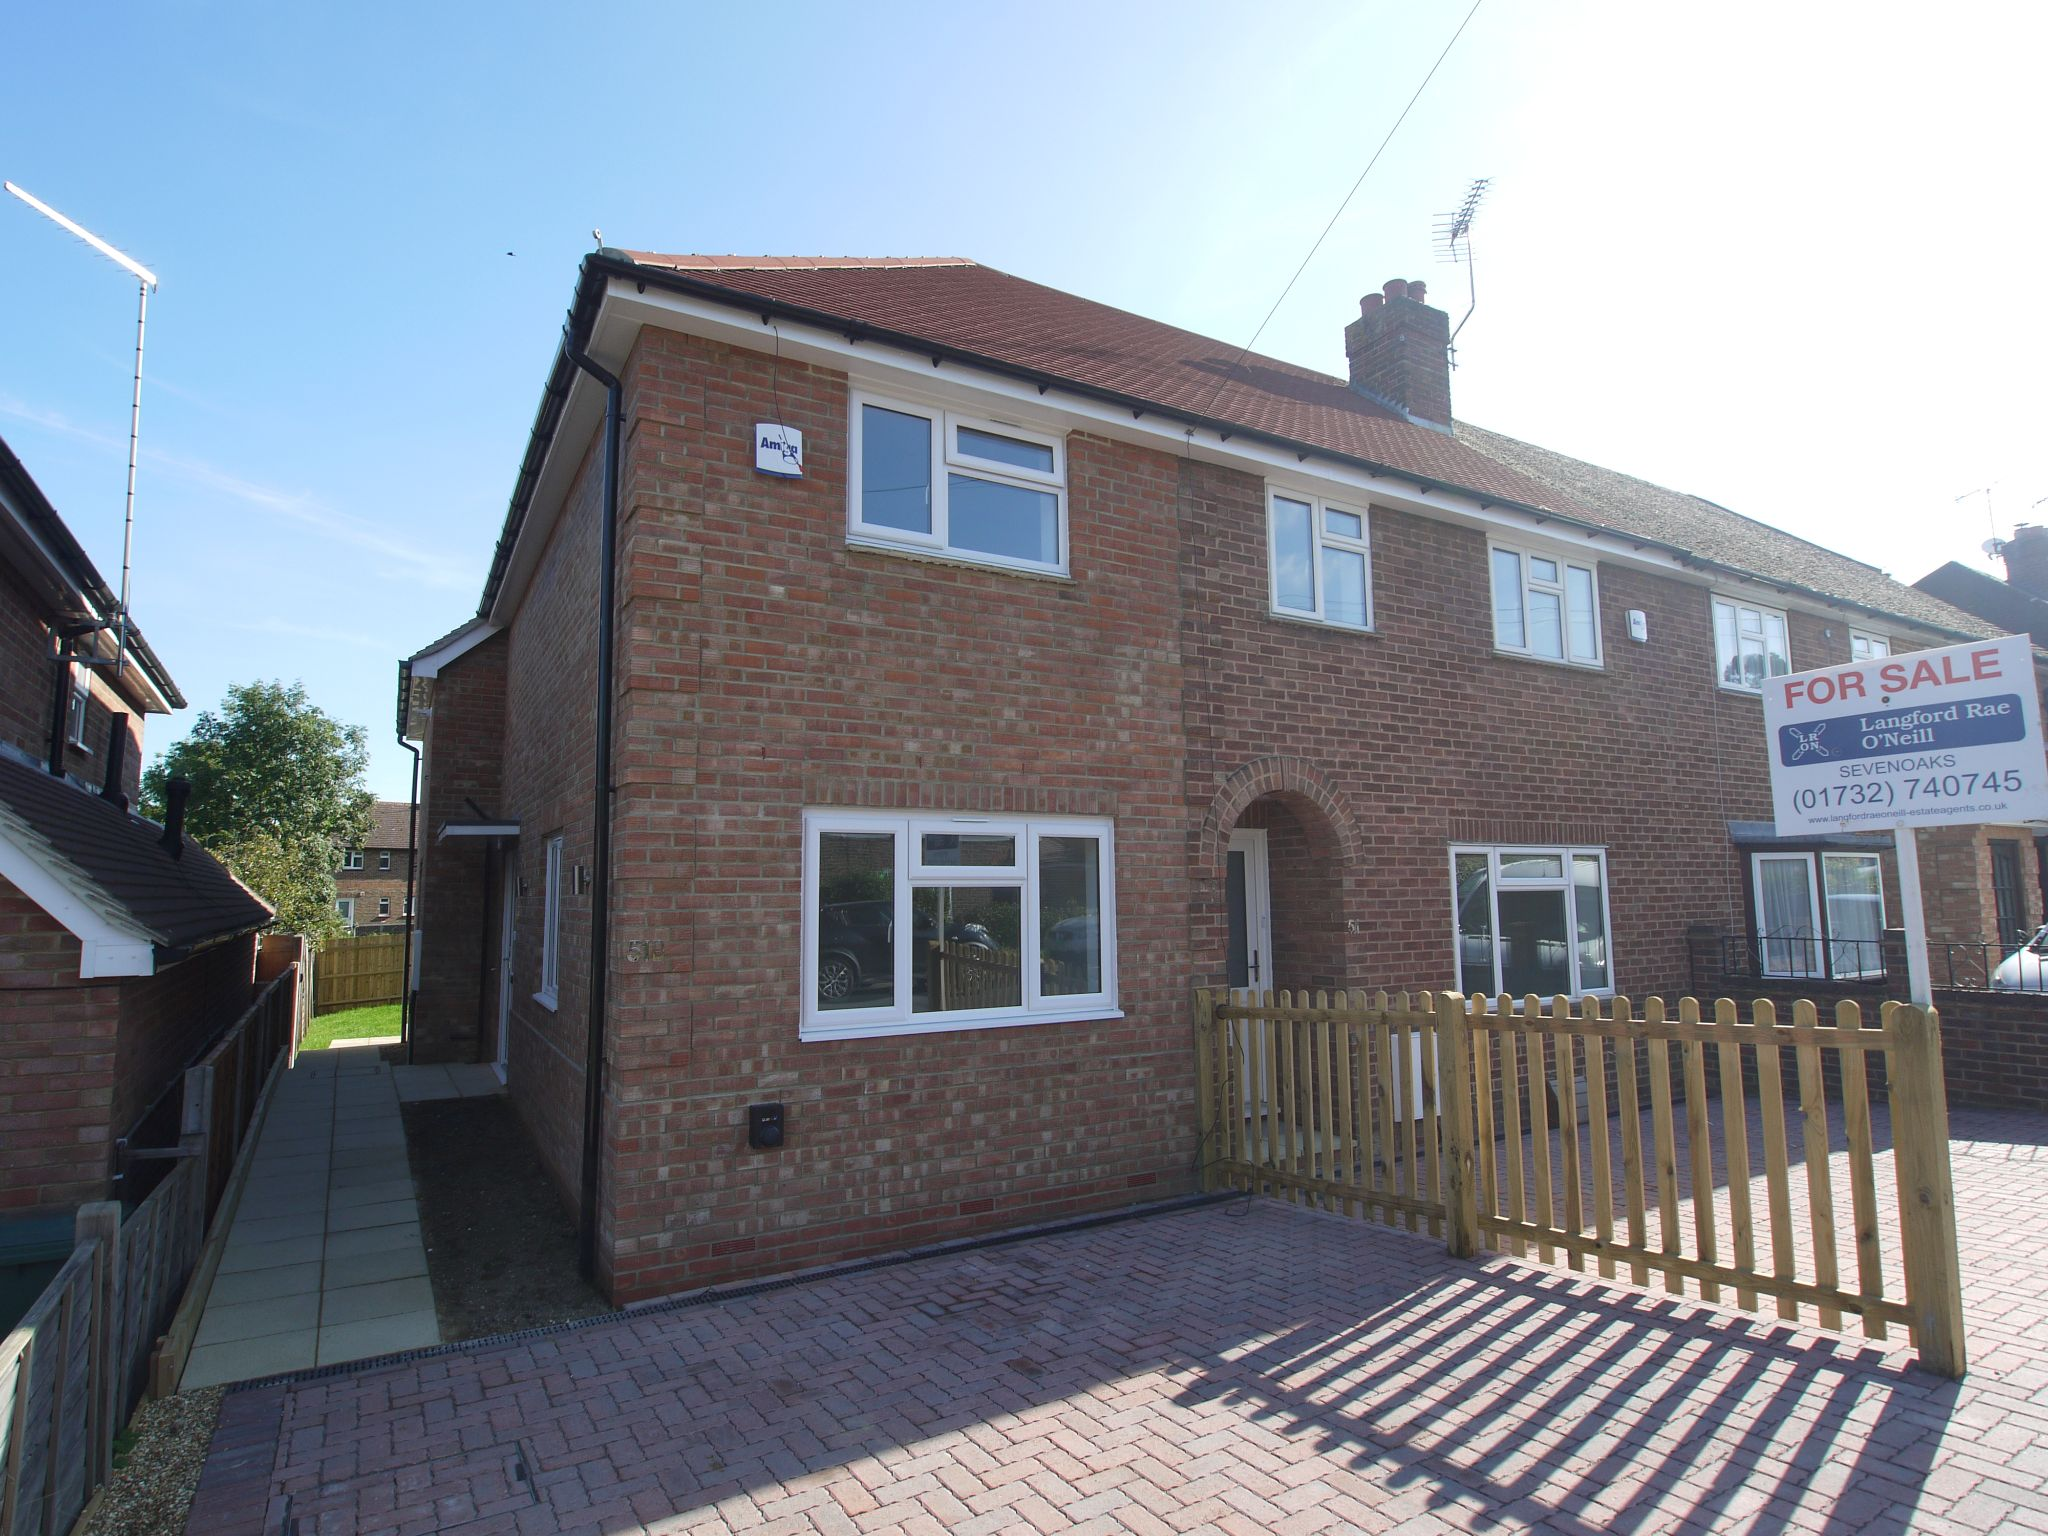 2 bedroom end terraced house For Sale in Sevenoaks - Photograph 1